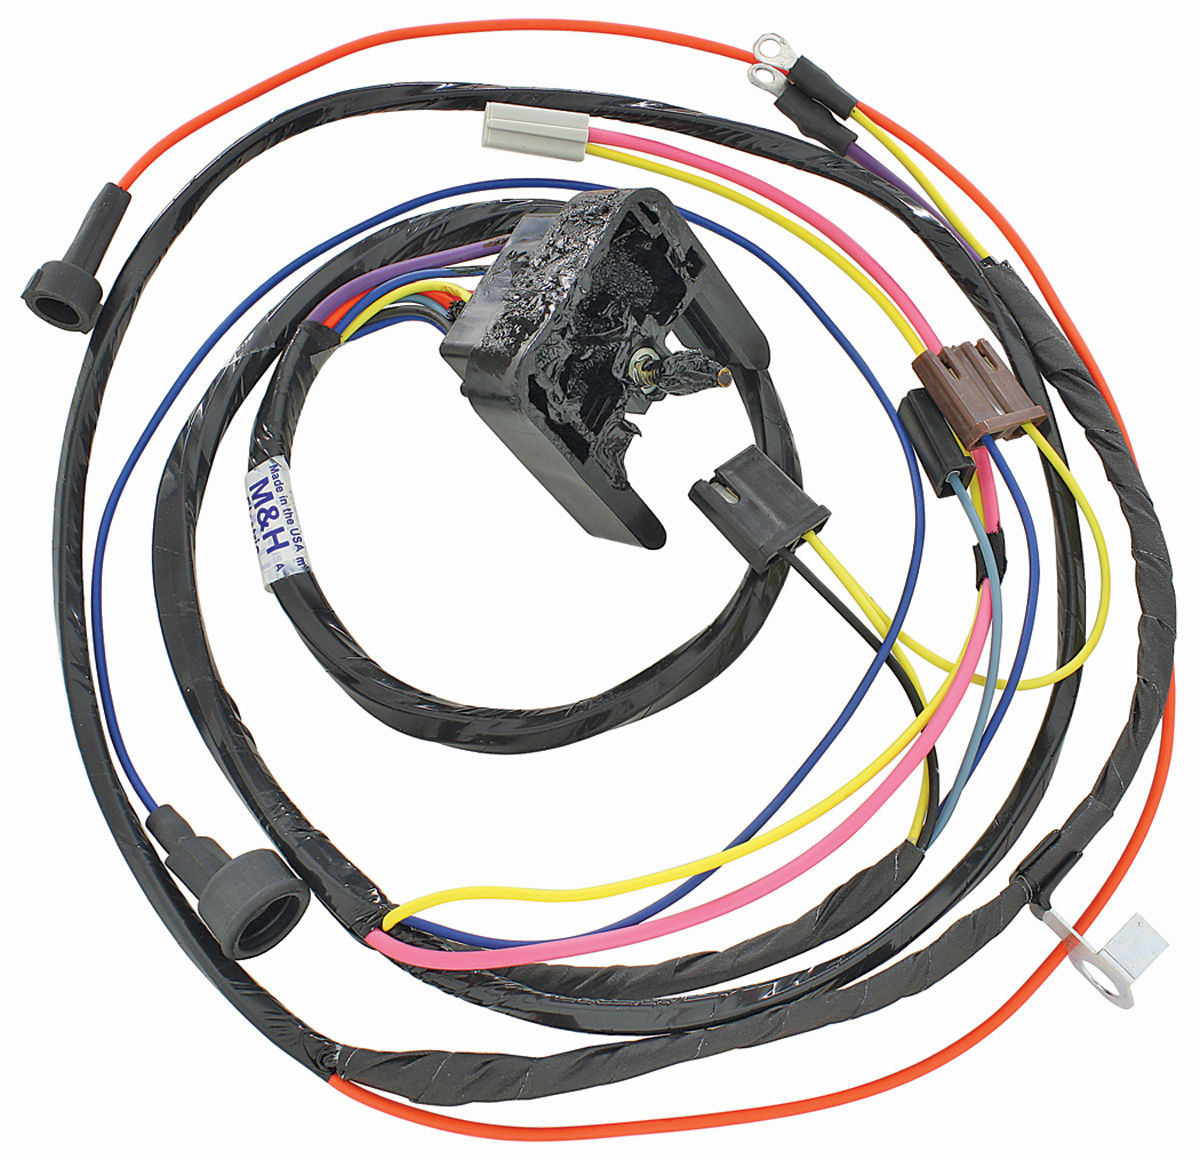 38947 lrg?v=102520130818 m&h 1968 69 chevelle engine harness 396 hei w warning lights Farmall H Wiring Diagram at crackthecode.co